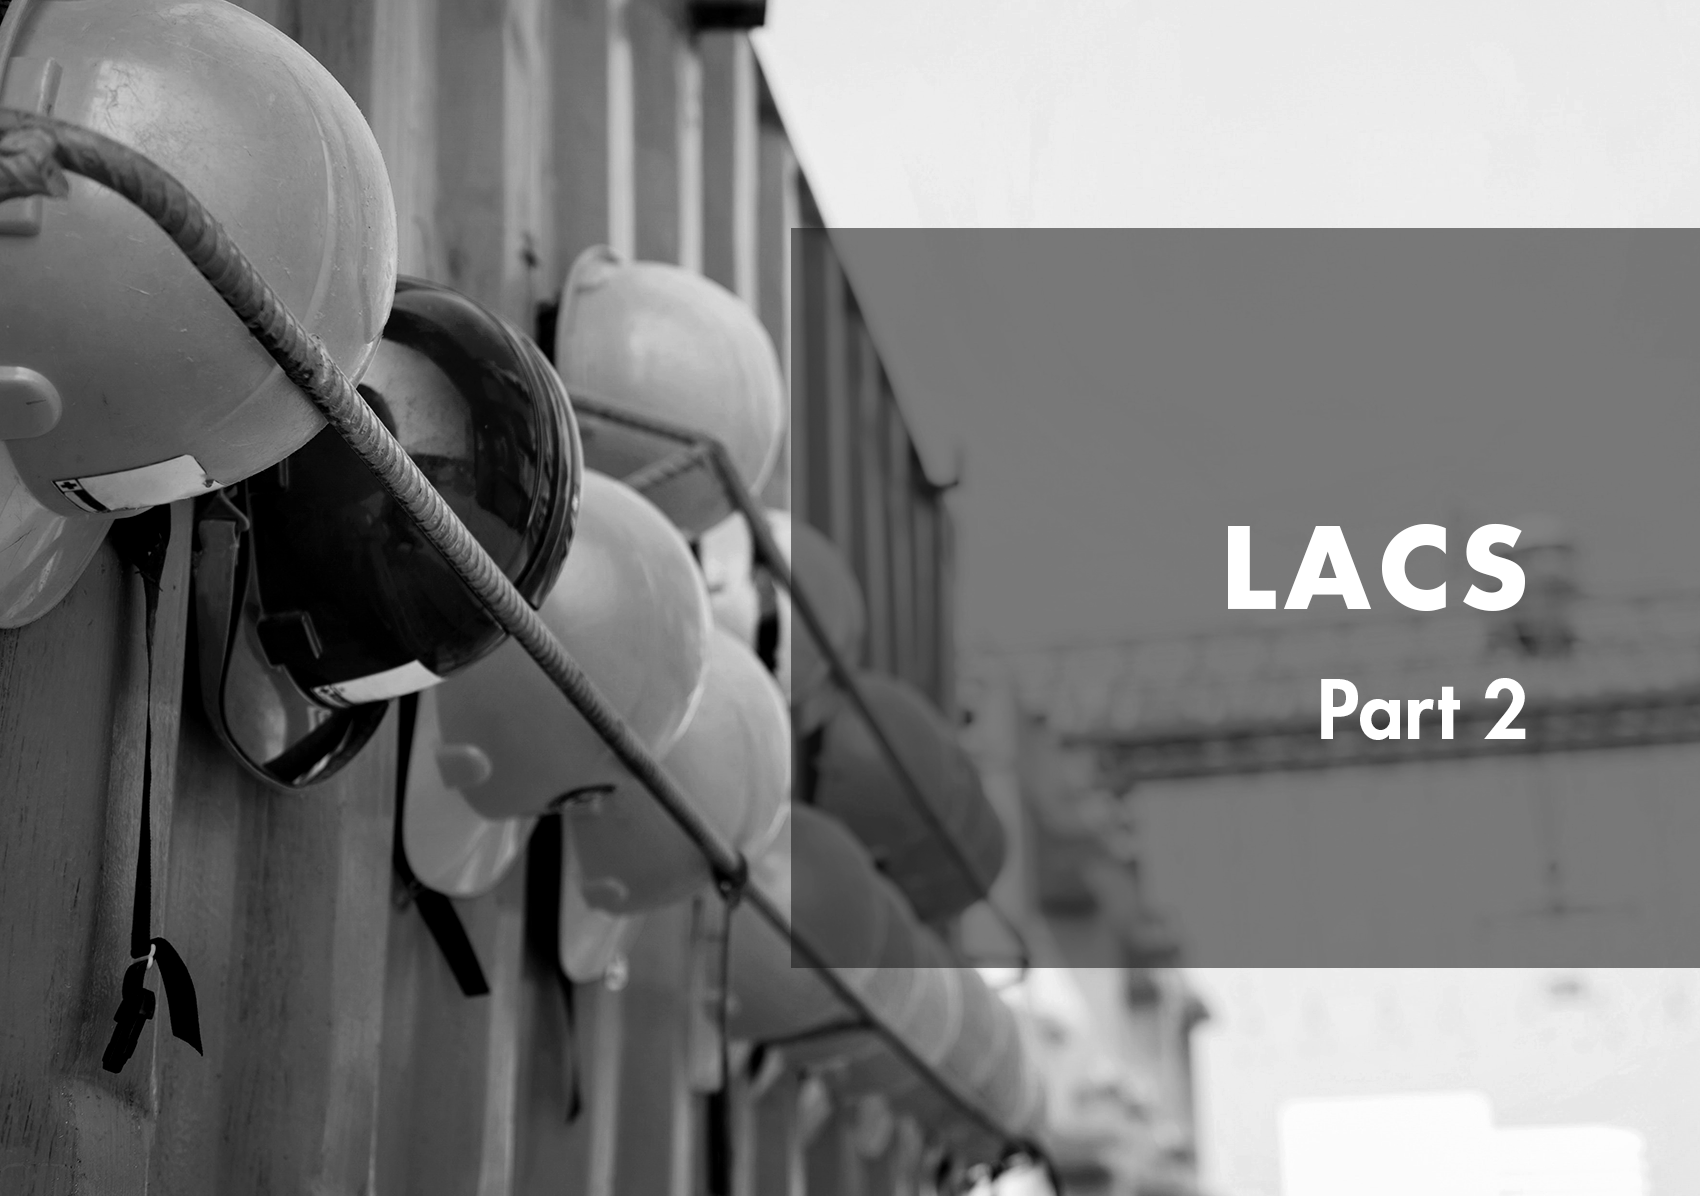 LACS – LEAN APPROACH TO CYBER SECURITY PART 2